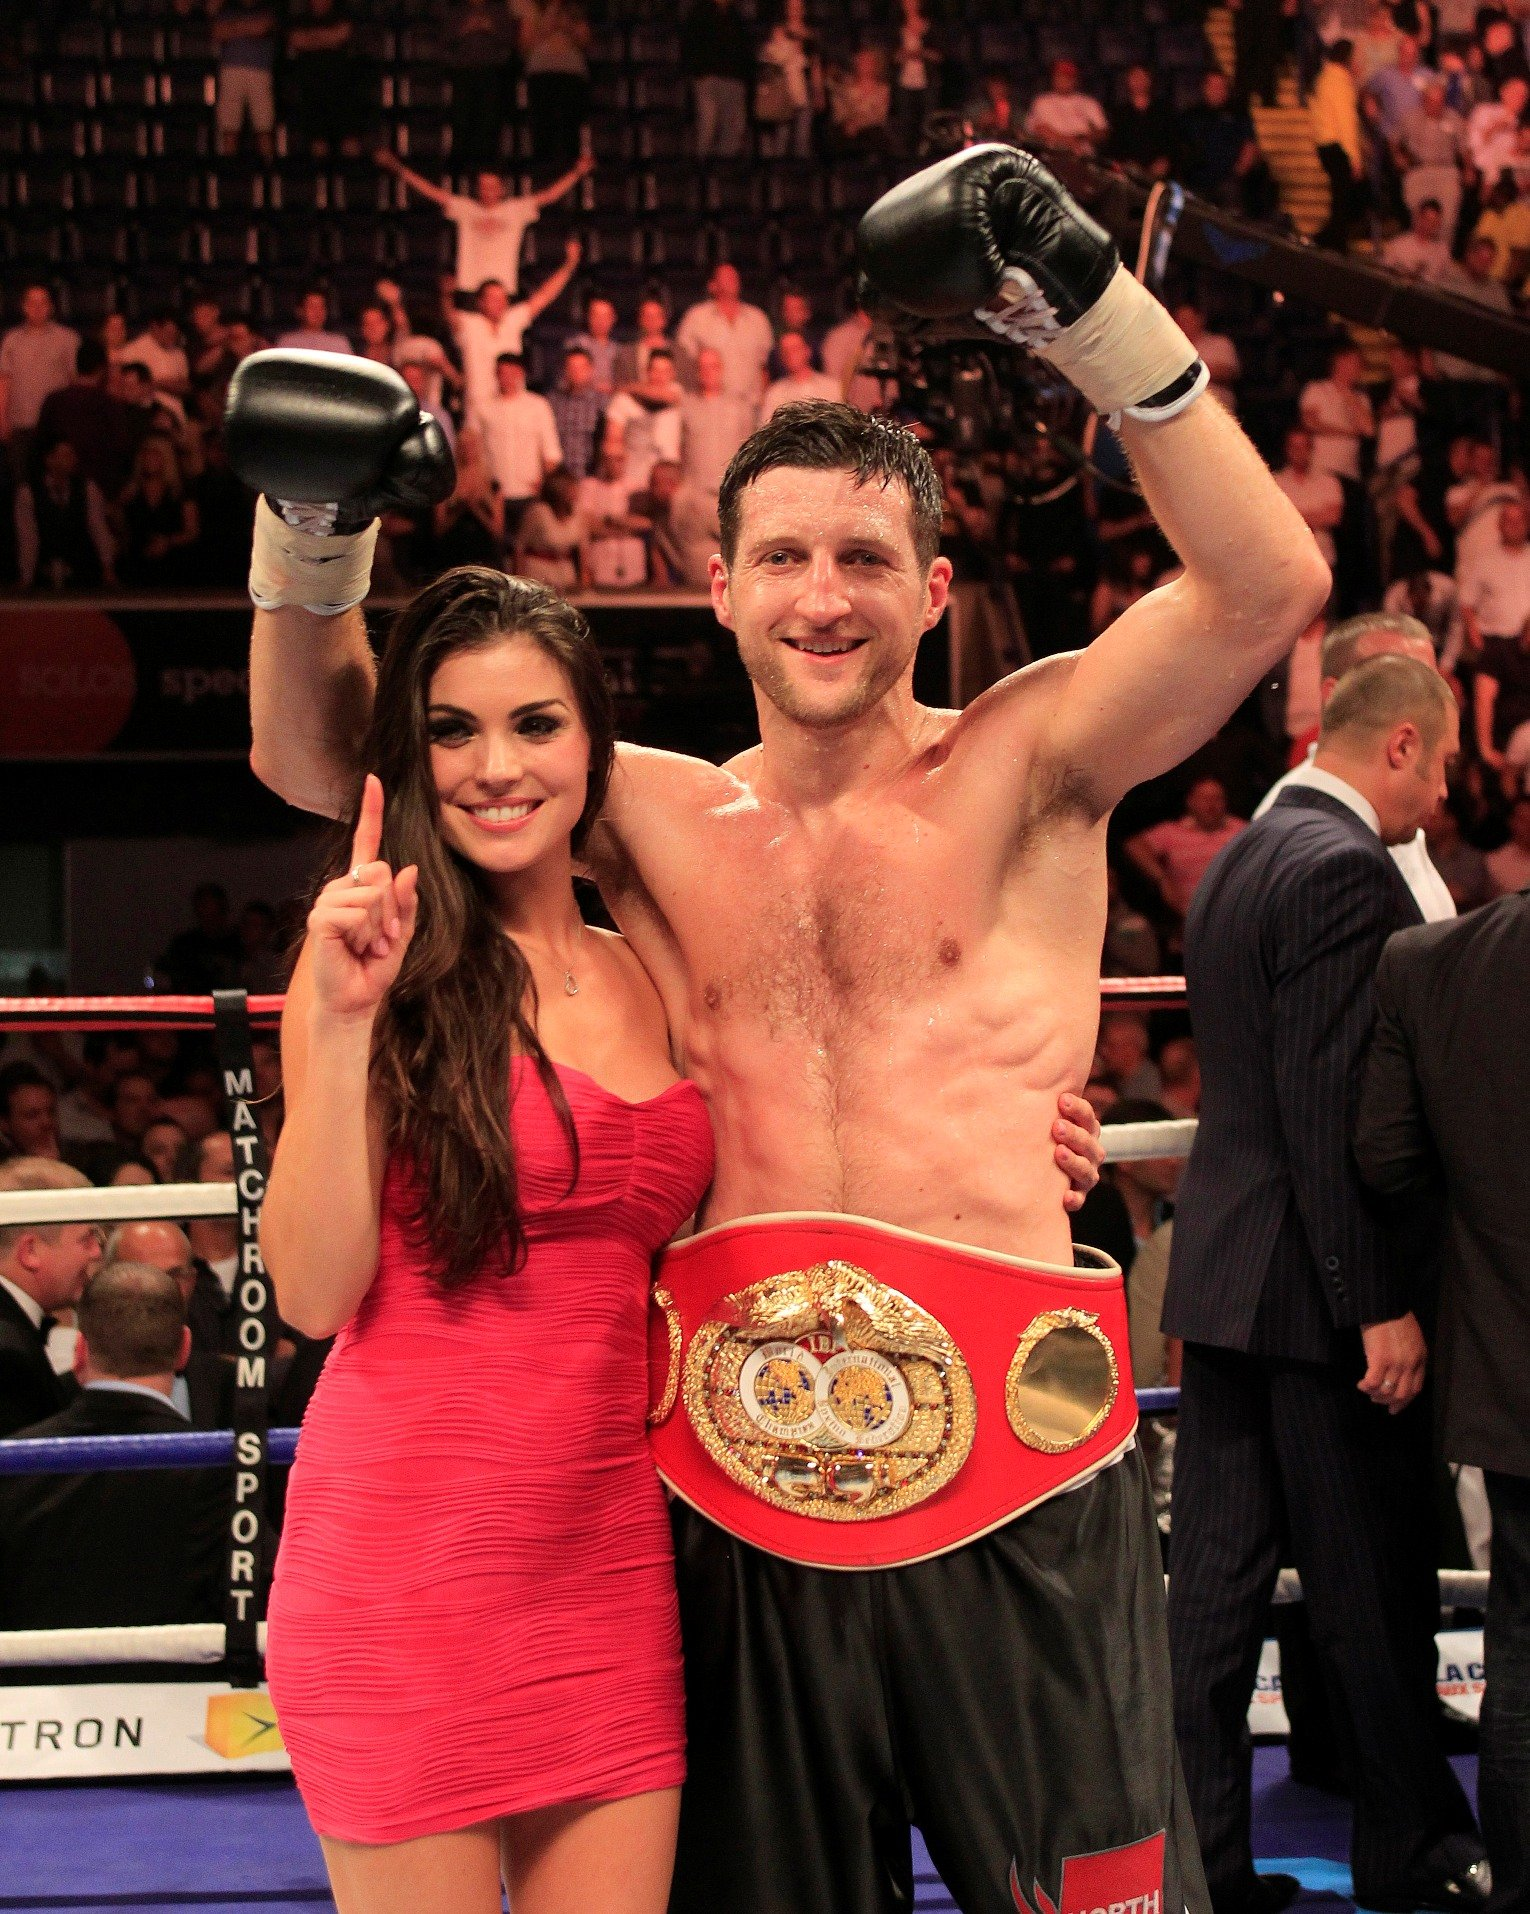 """Carl 'The Cobra' Froch"" edition of ""The Pugilist KOrner's: Weekend Wrap"""